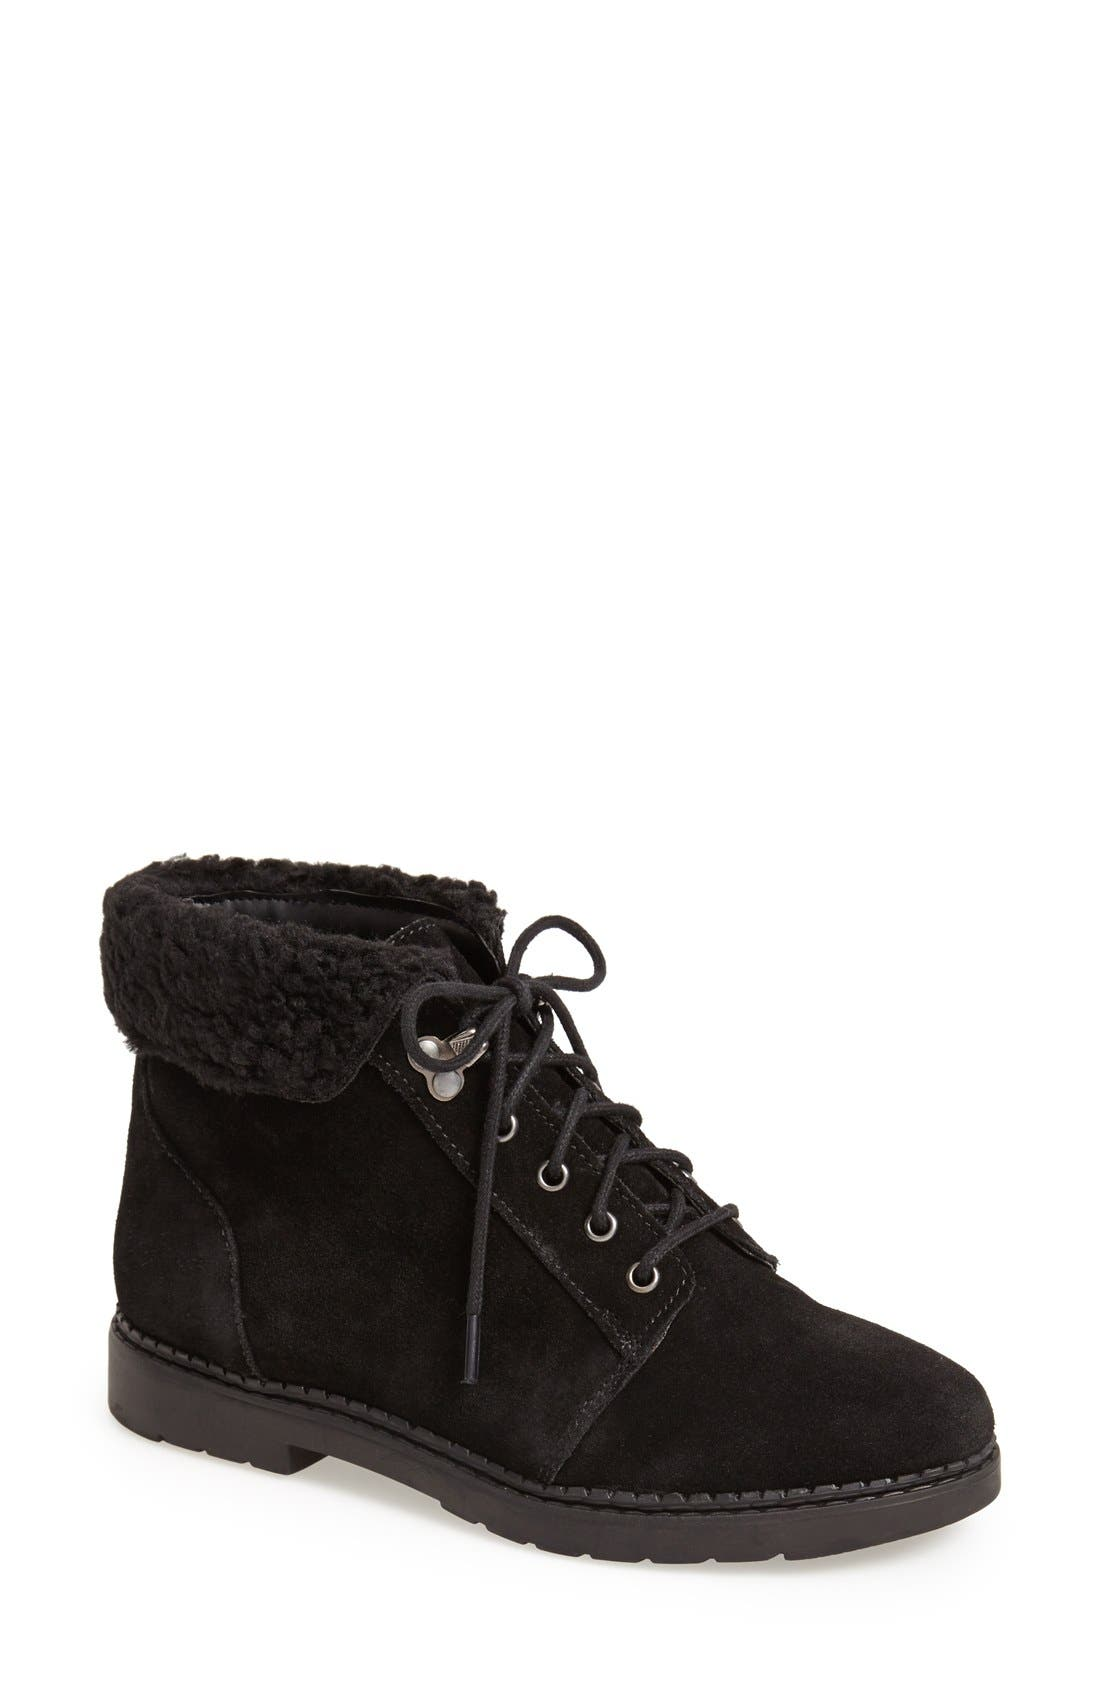 Alternate Image 1 Selected - Topshop 'Brody' Suede Ankle Boot (Women)